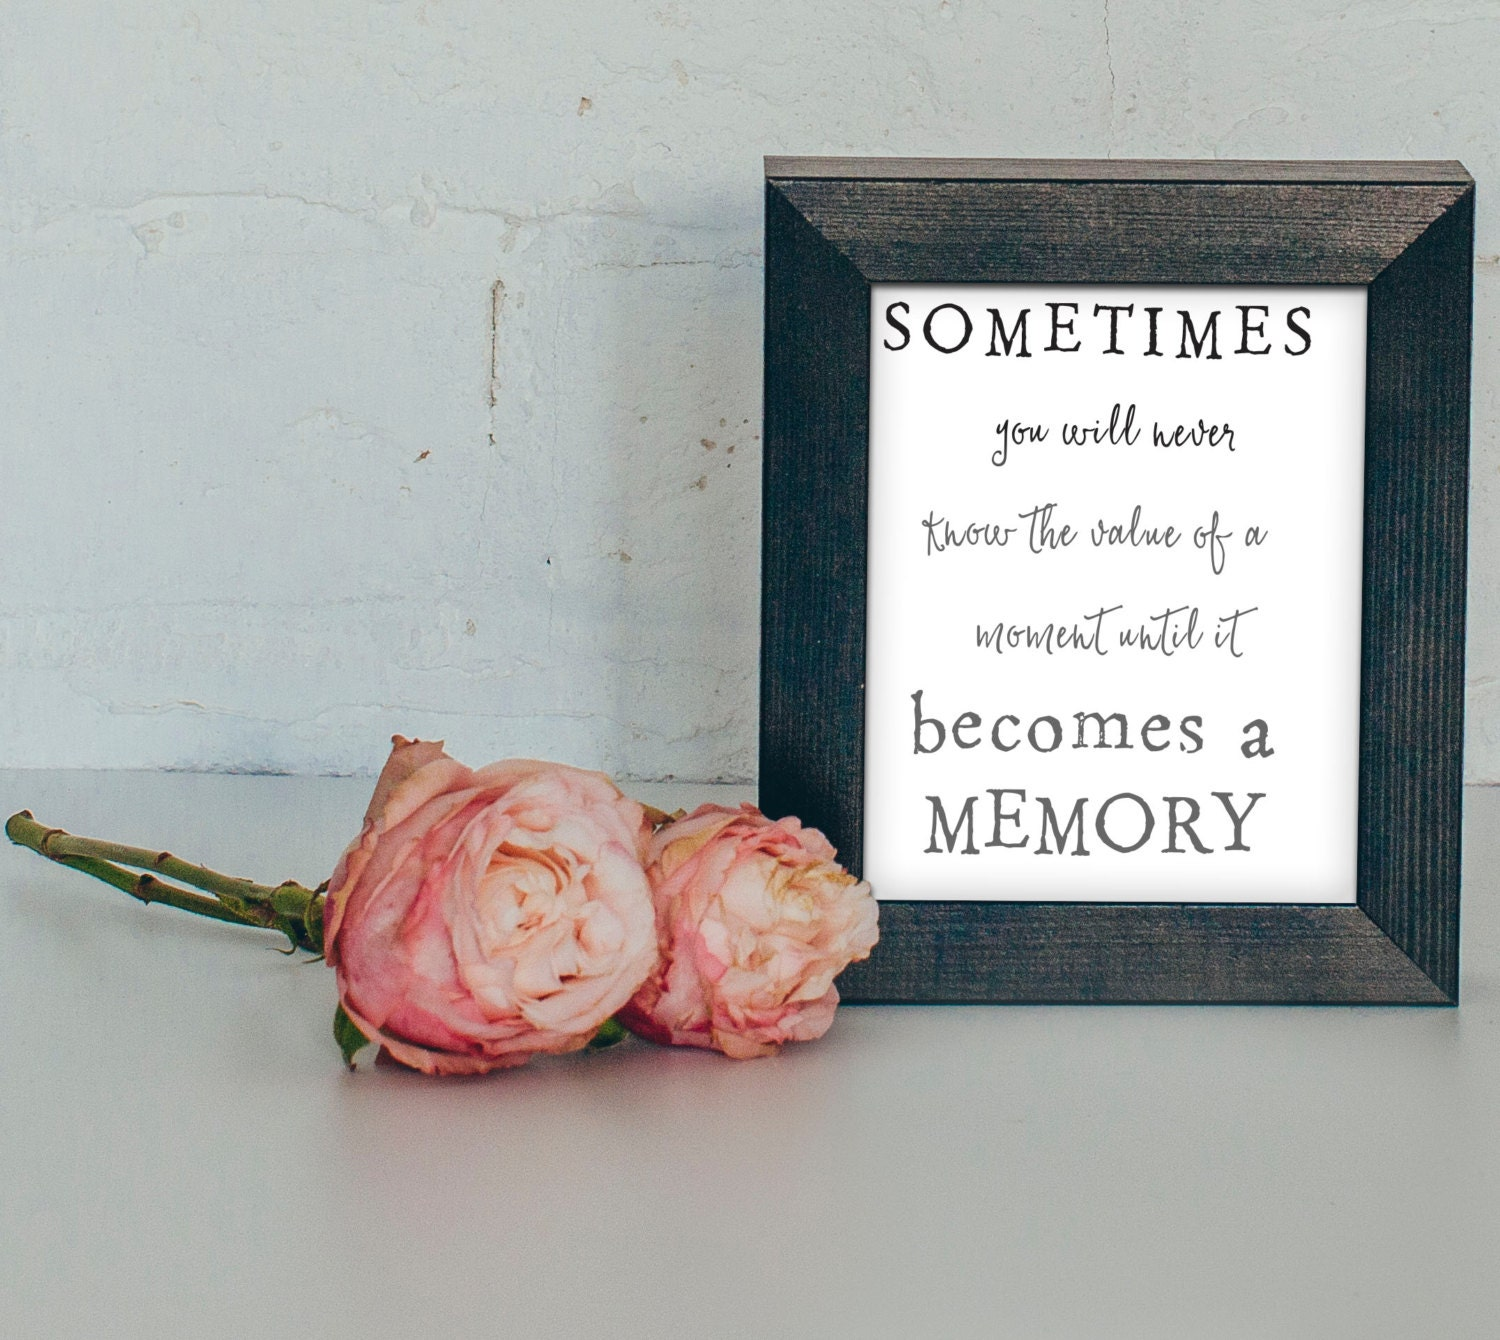 In Remembrance Quotes Of A Loved One Remembrance Giftremembering A Loved Onein